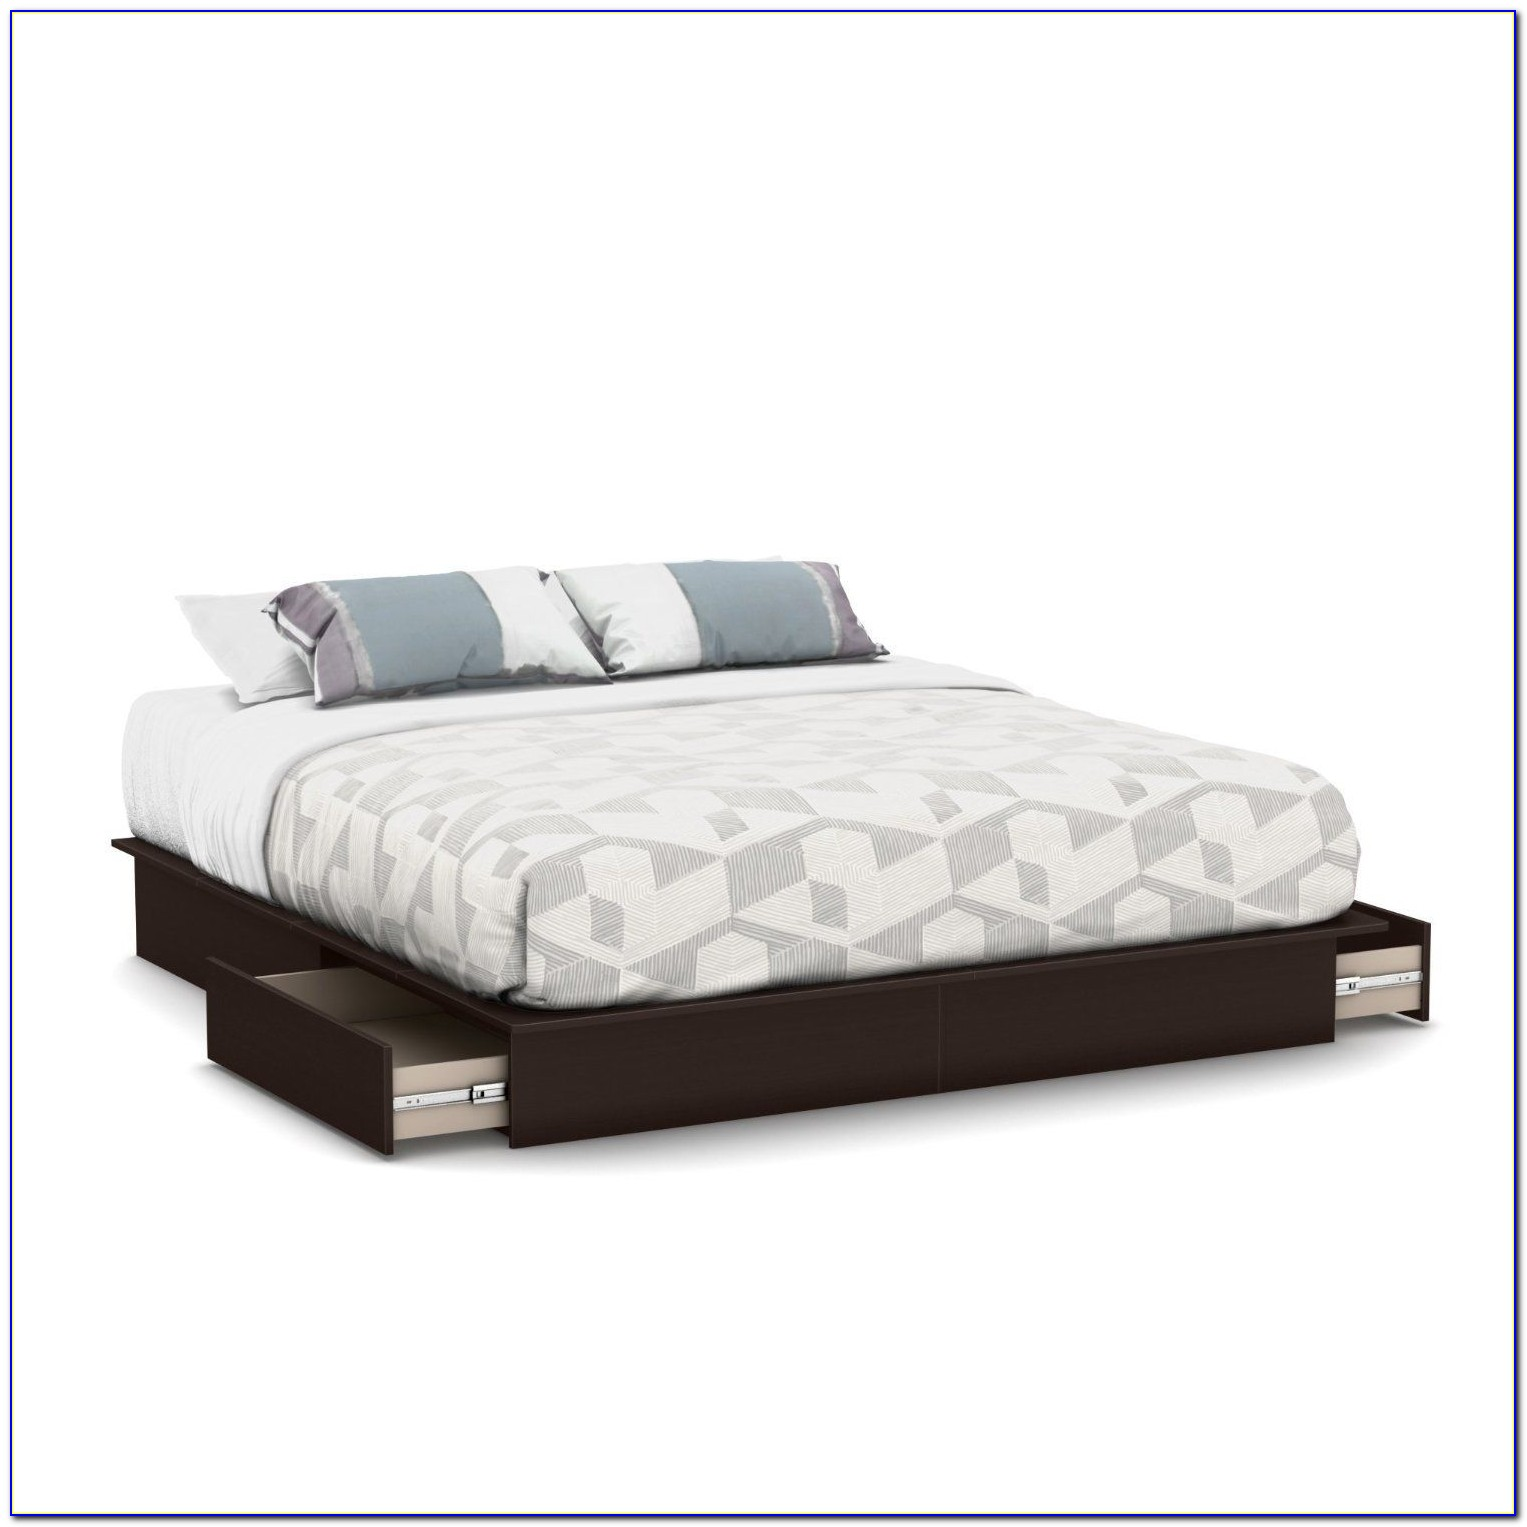 Queen Storage Bed No Headboard